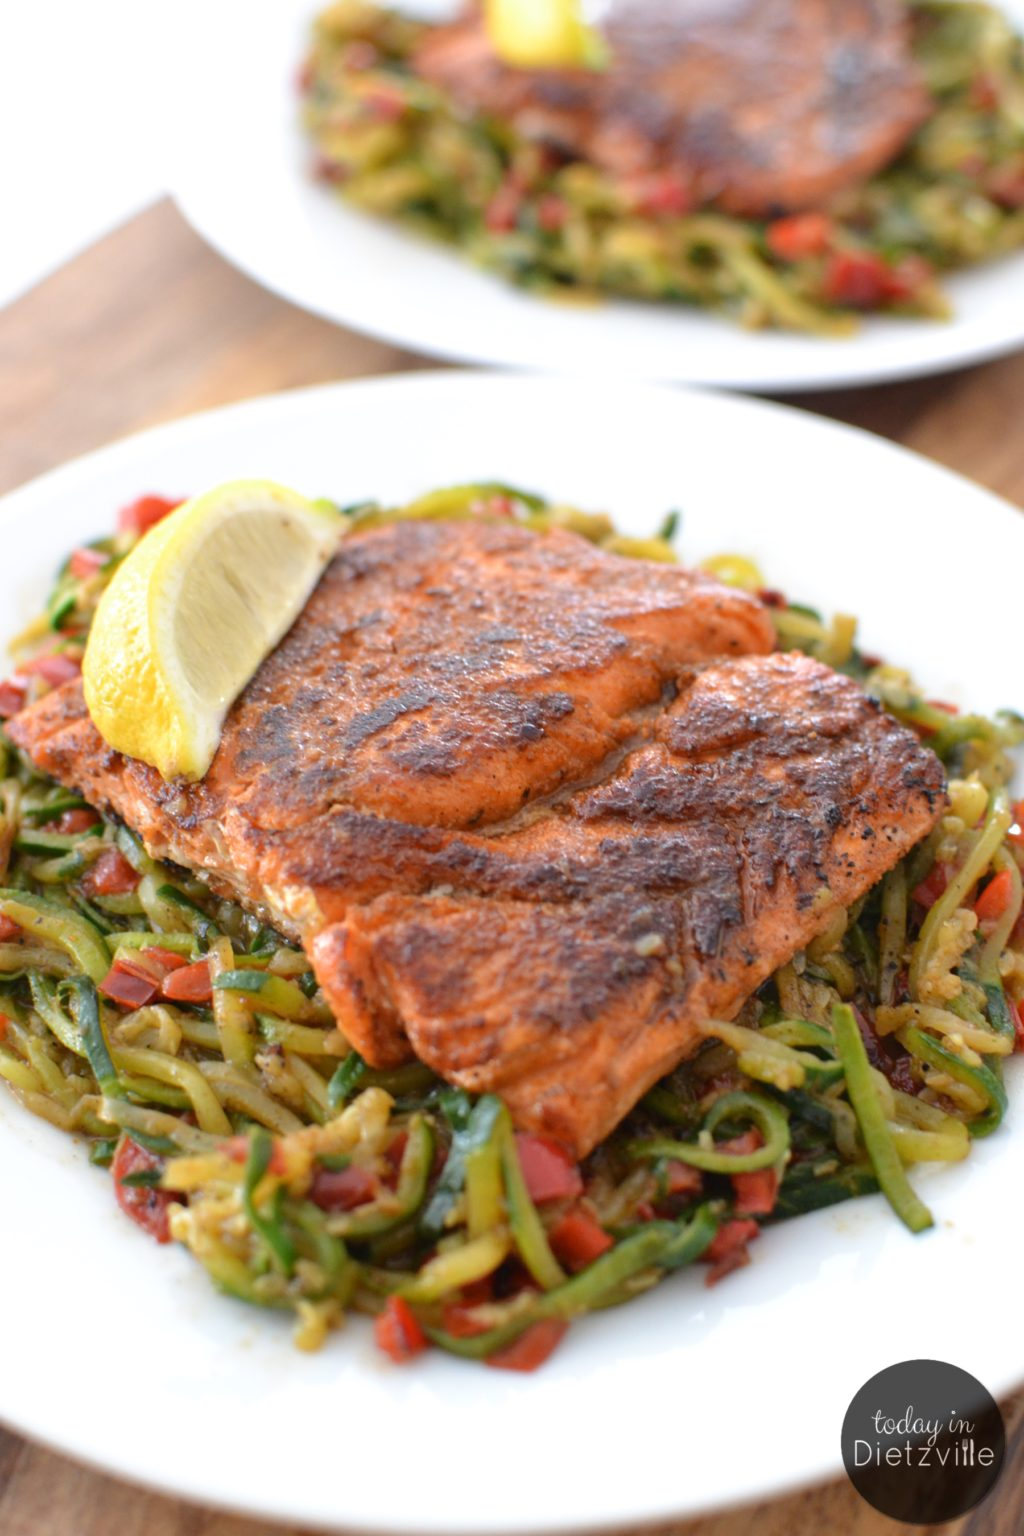 Blackened Salmon Over Cajun Zoodles {in 1 skillet!} |Me + spicy, Cajun food = true love. Here's a Paleo, Whole30, THM-friendly version of a classic Cajun favorite -- Blackened Salmon Over Cajun Zoodles in just 1 skillet! | TodayInDietzville.com